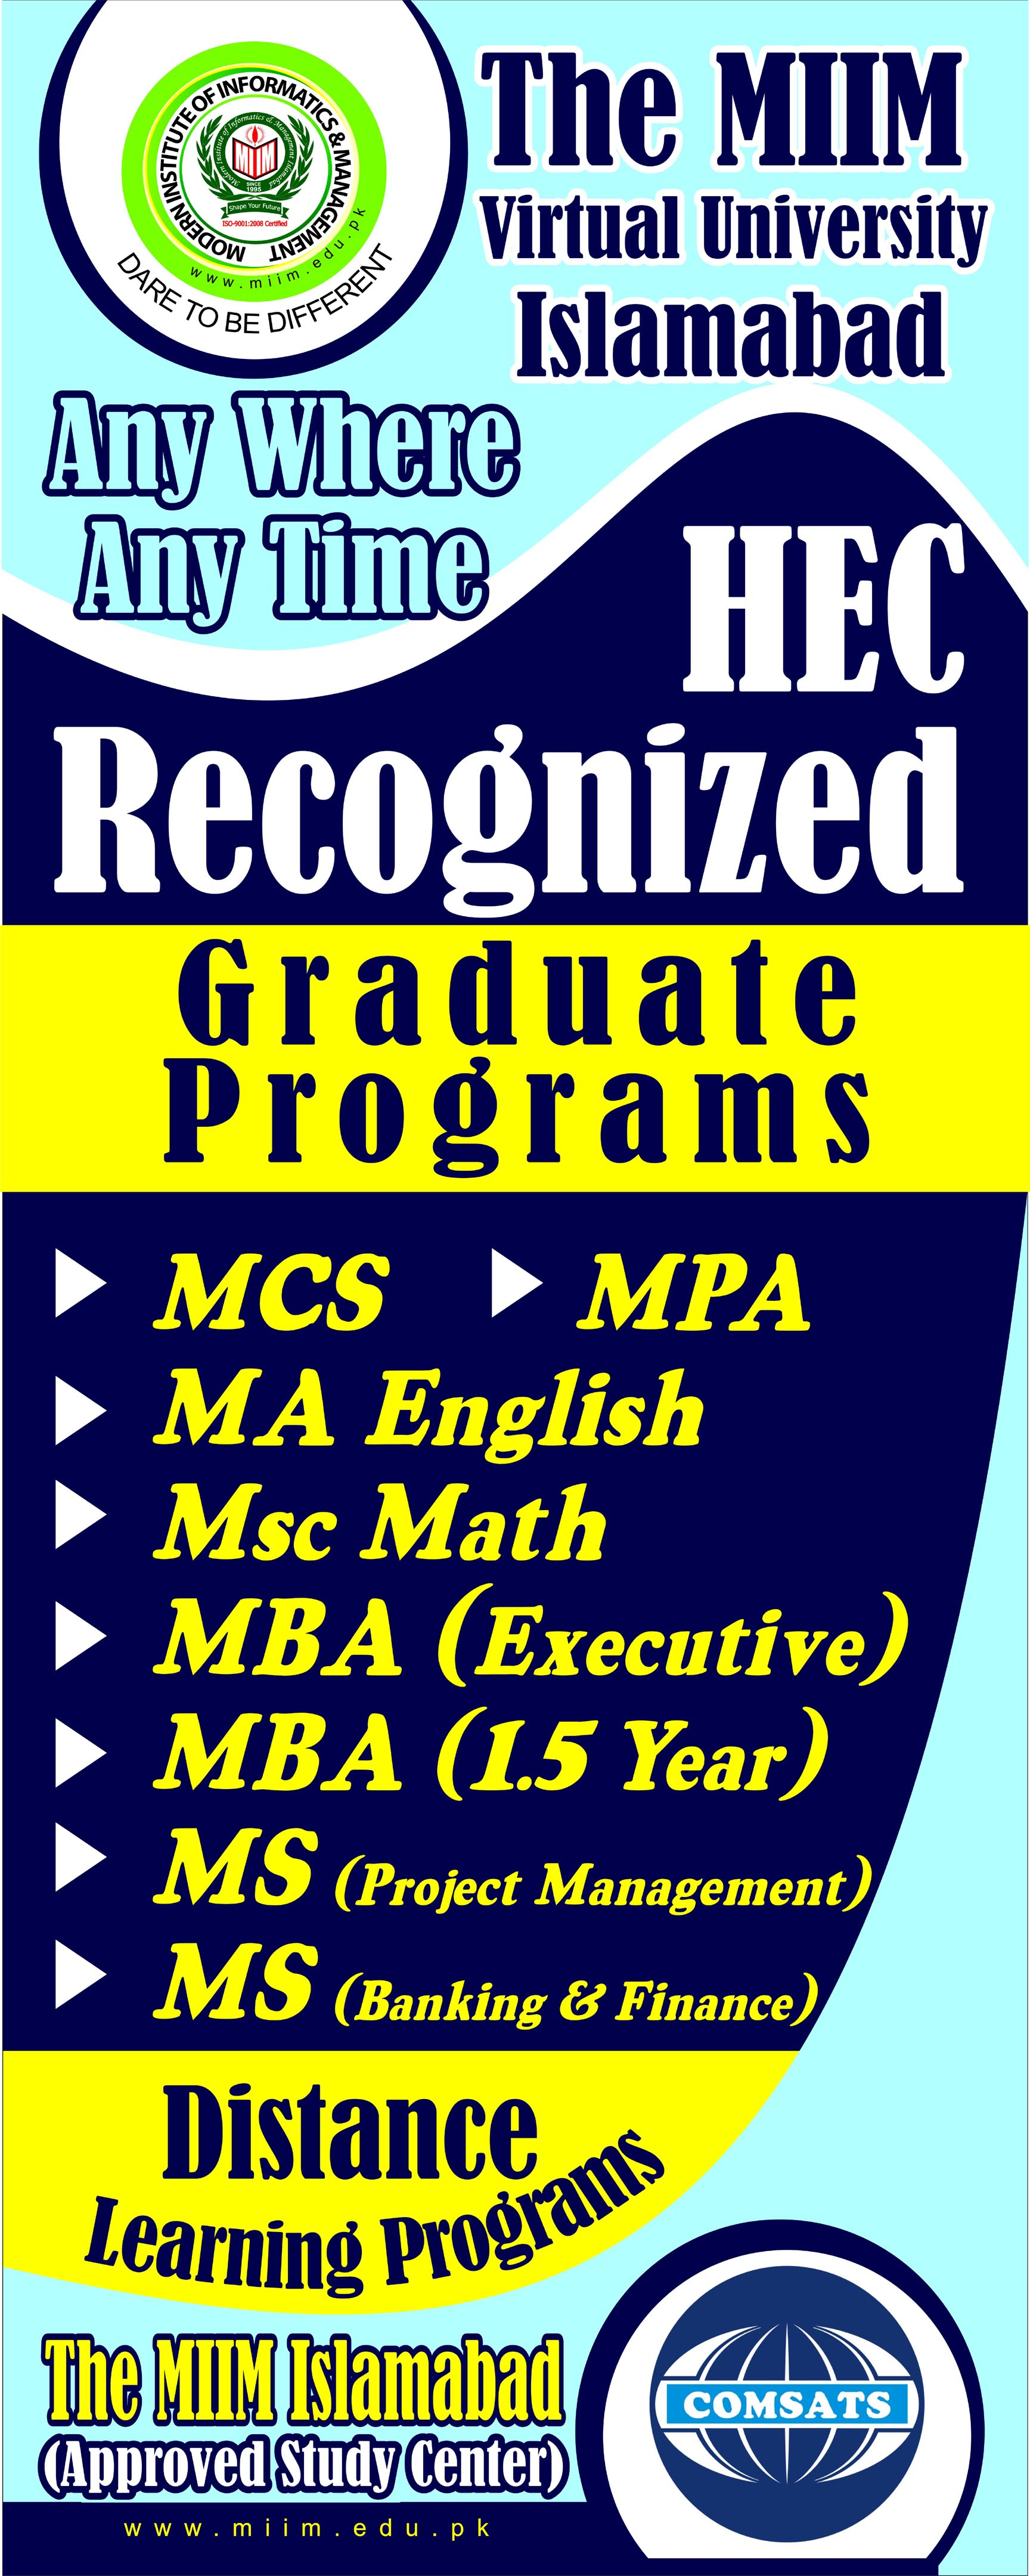 distance learning degree programs the miim islamabad distance learning degree programs 5x2 standee 2